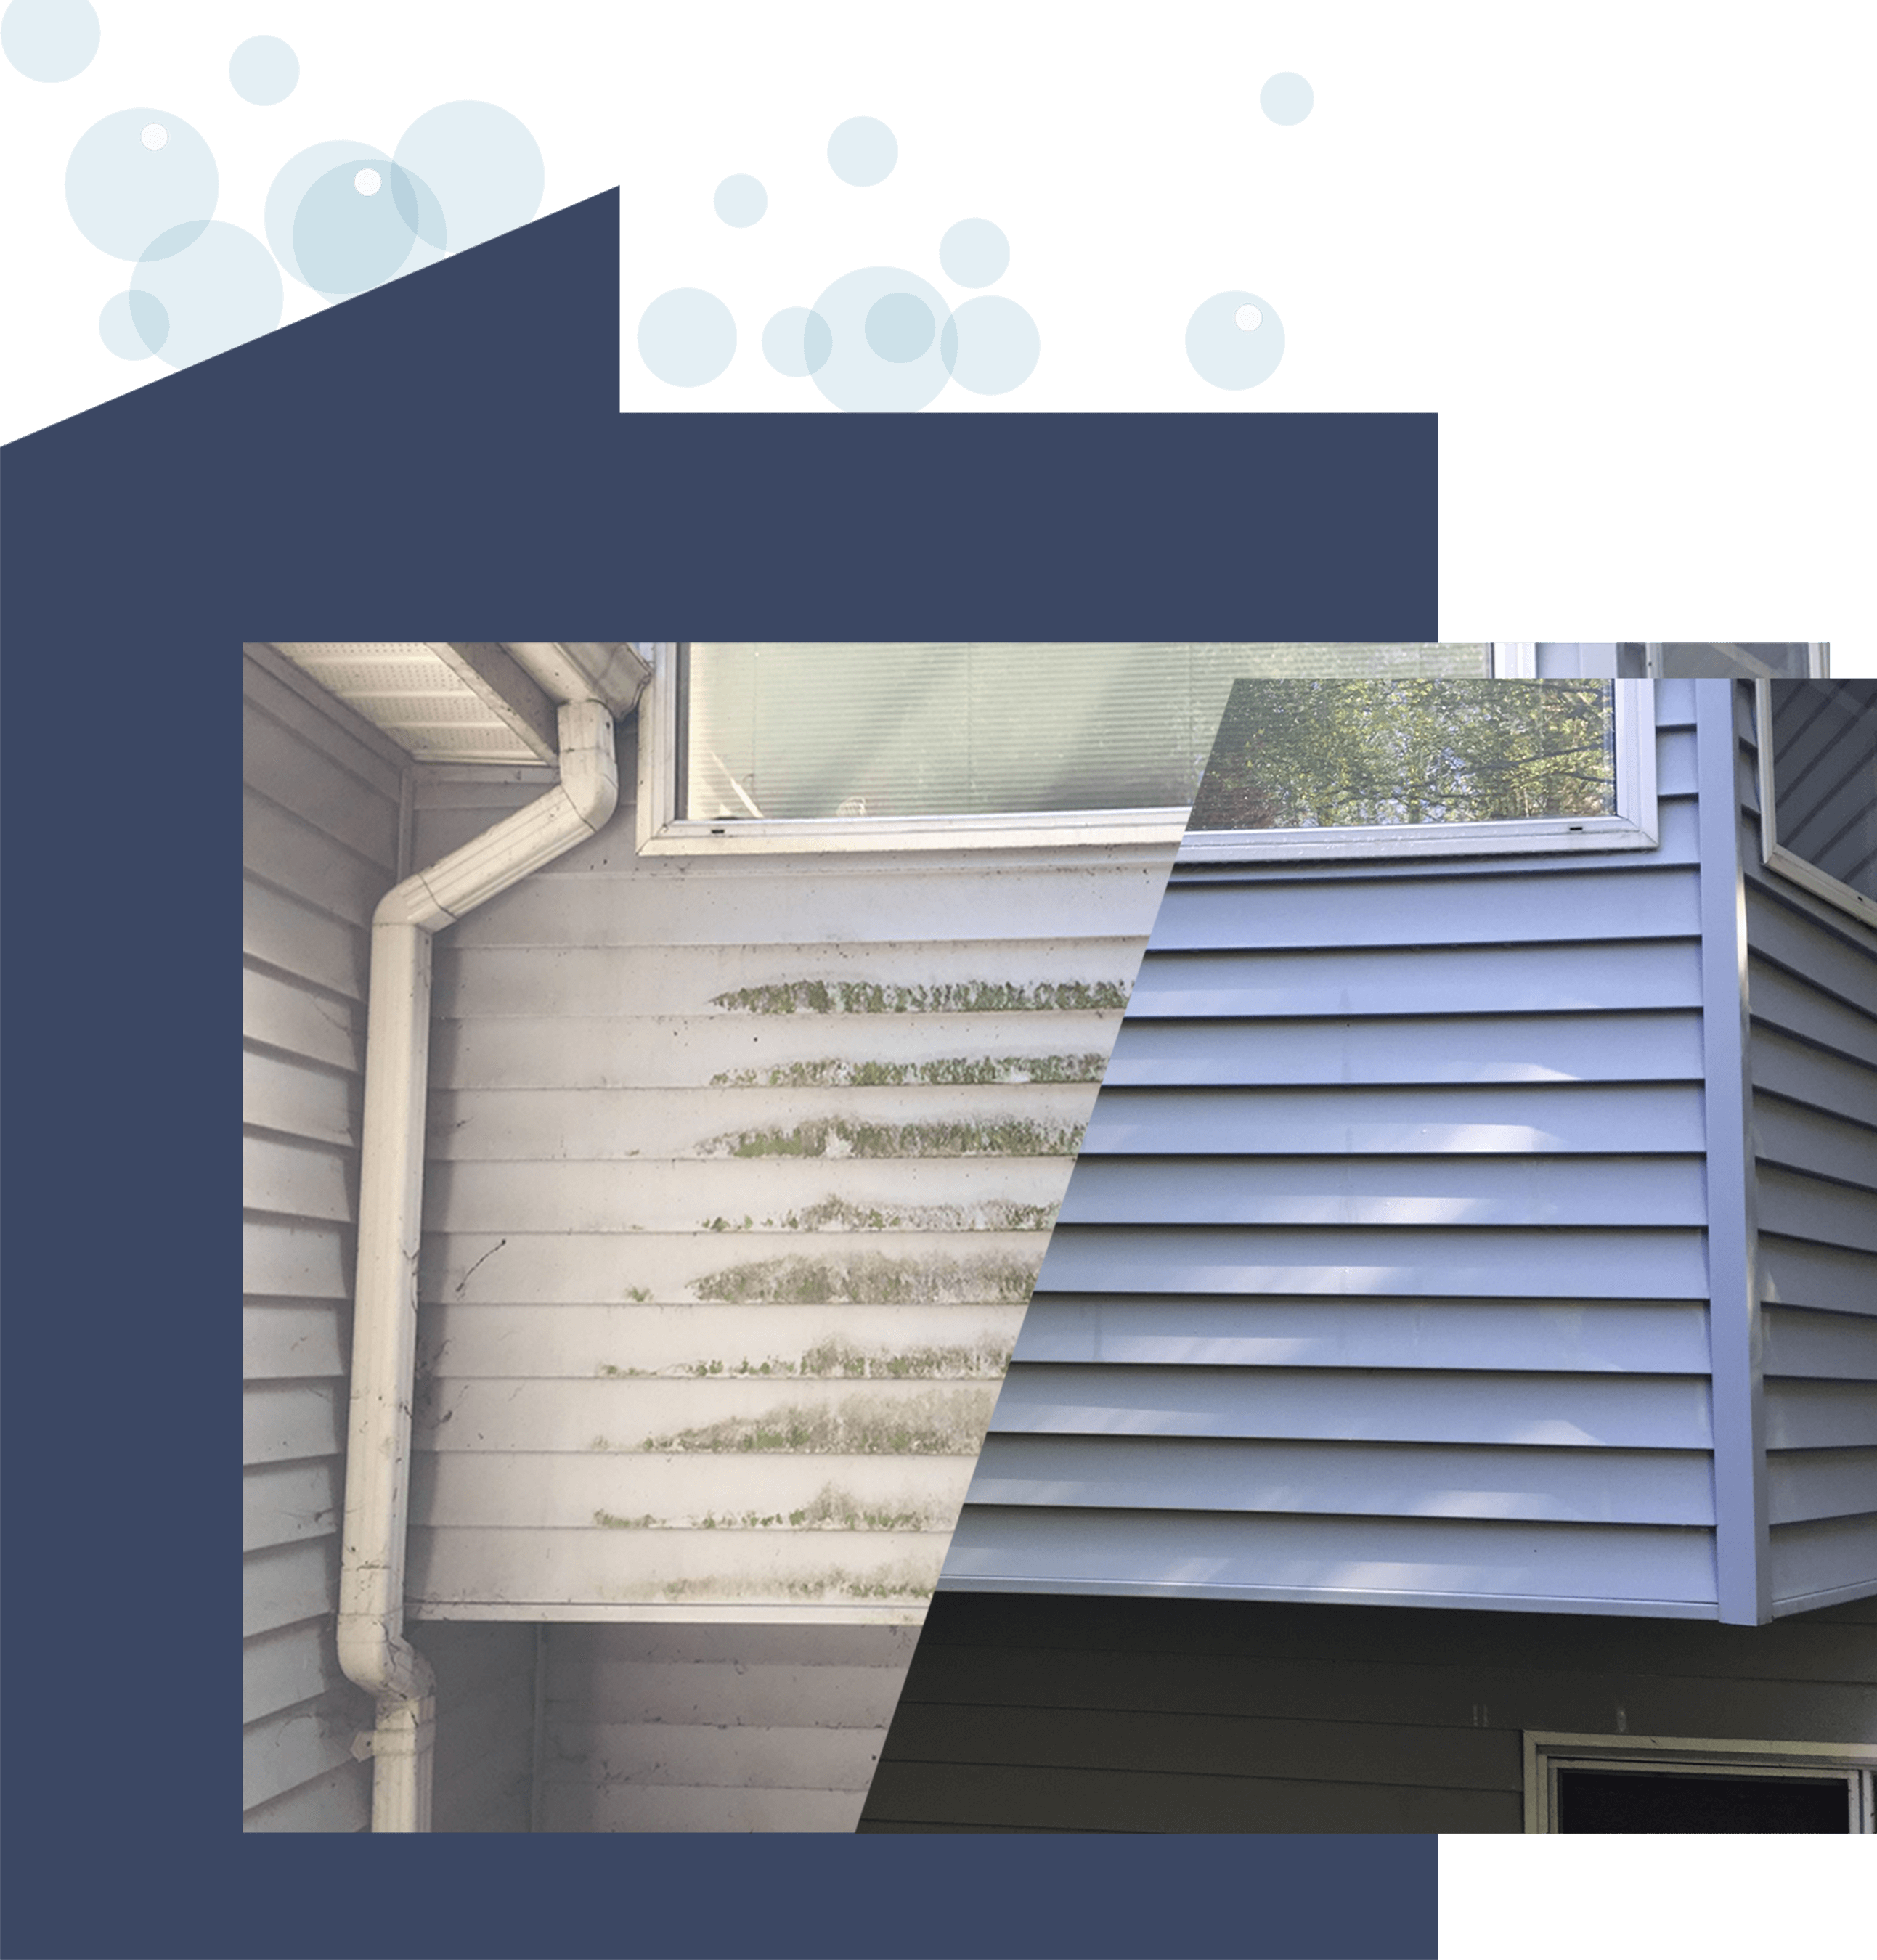 before-and-after-comparison-of-siding-after-pressure-washing-service